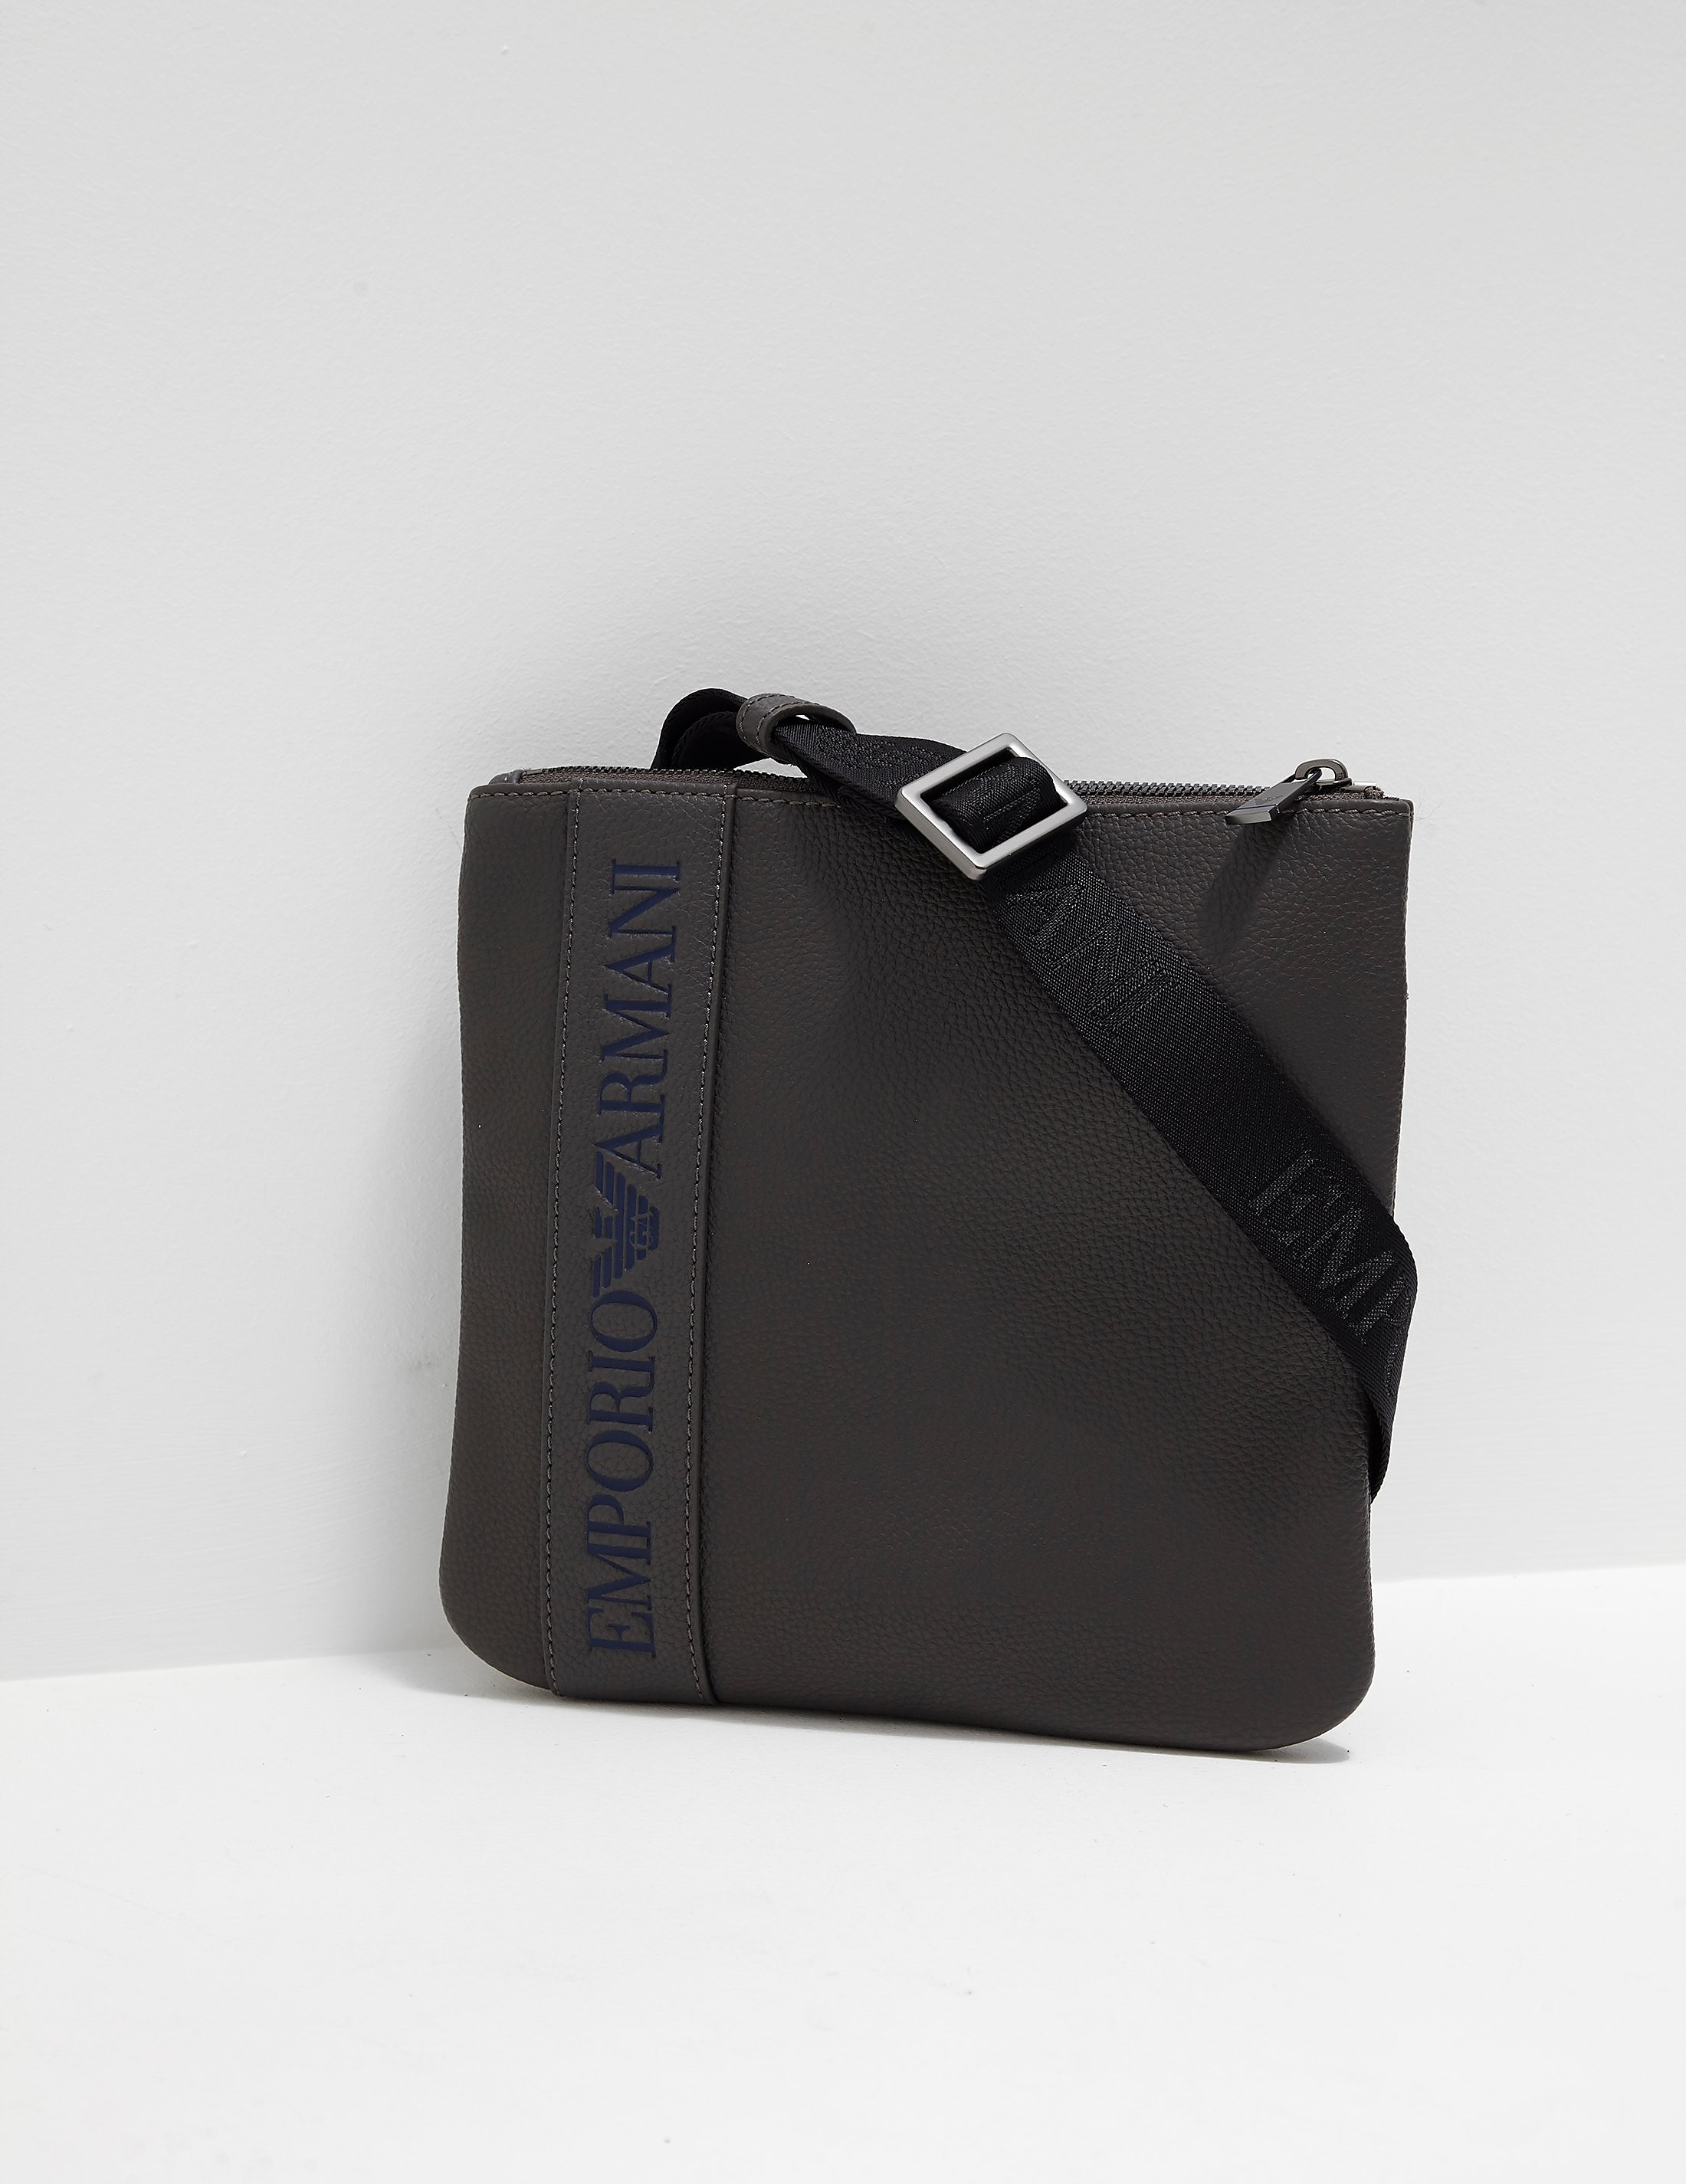 Emporio Armani Granato Small Item Bag